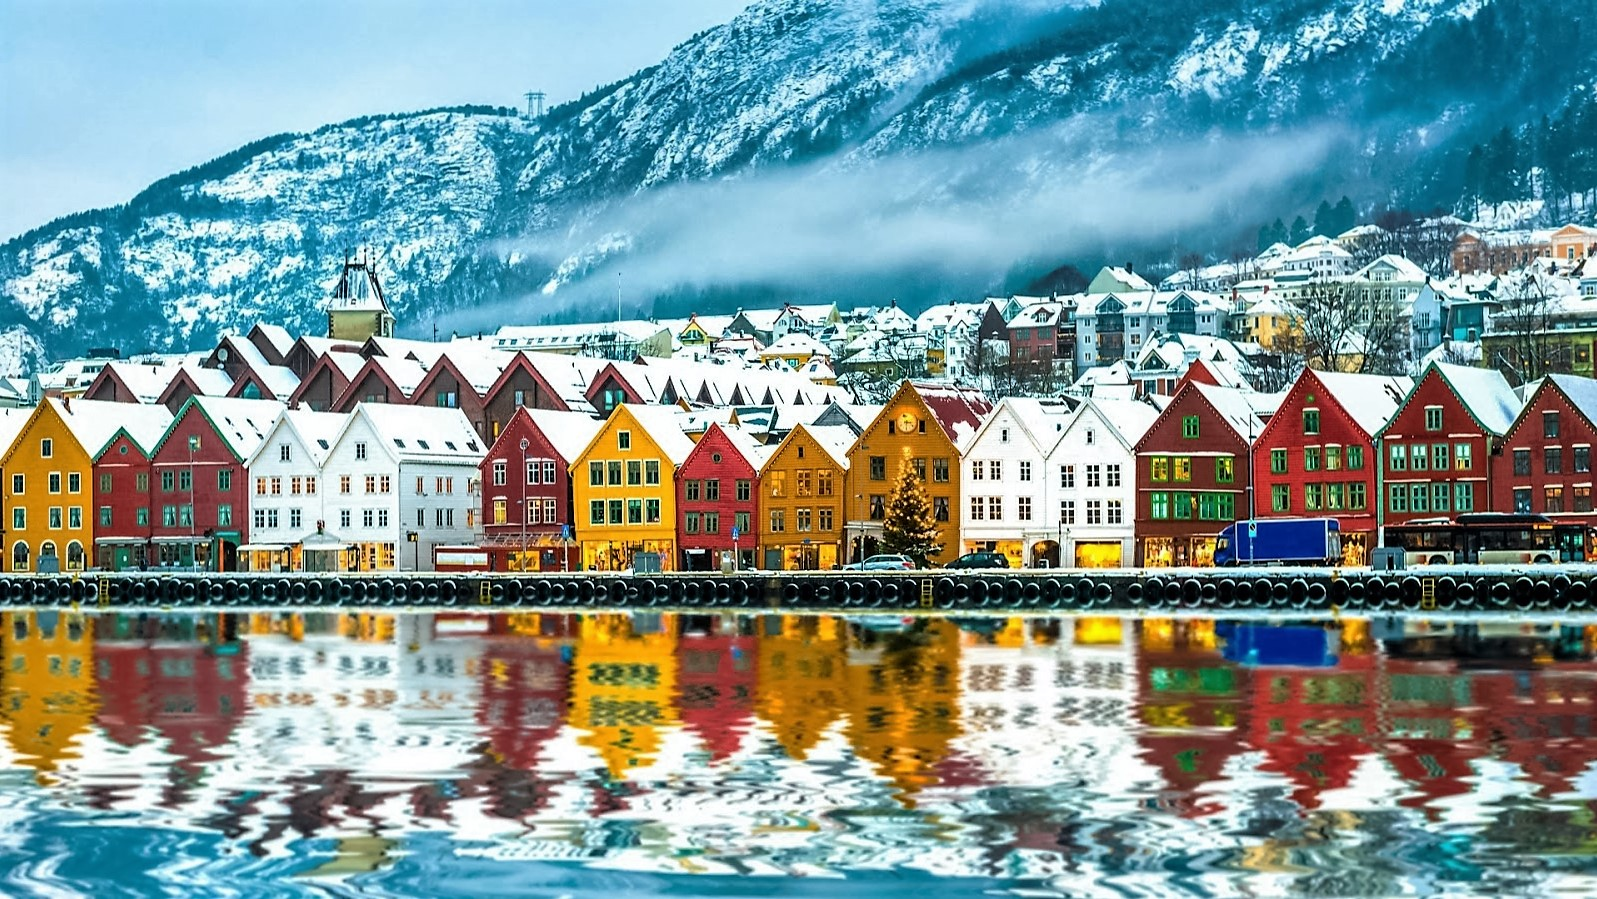 City, Lights and Love of Norway